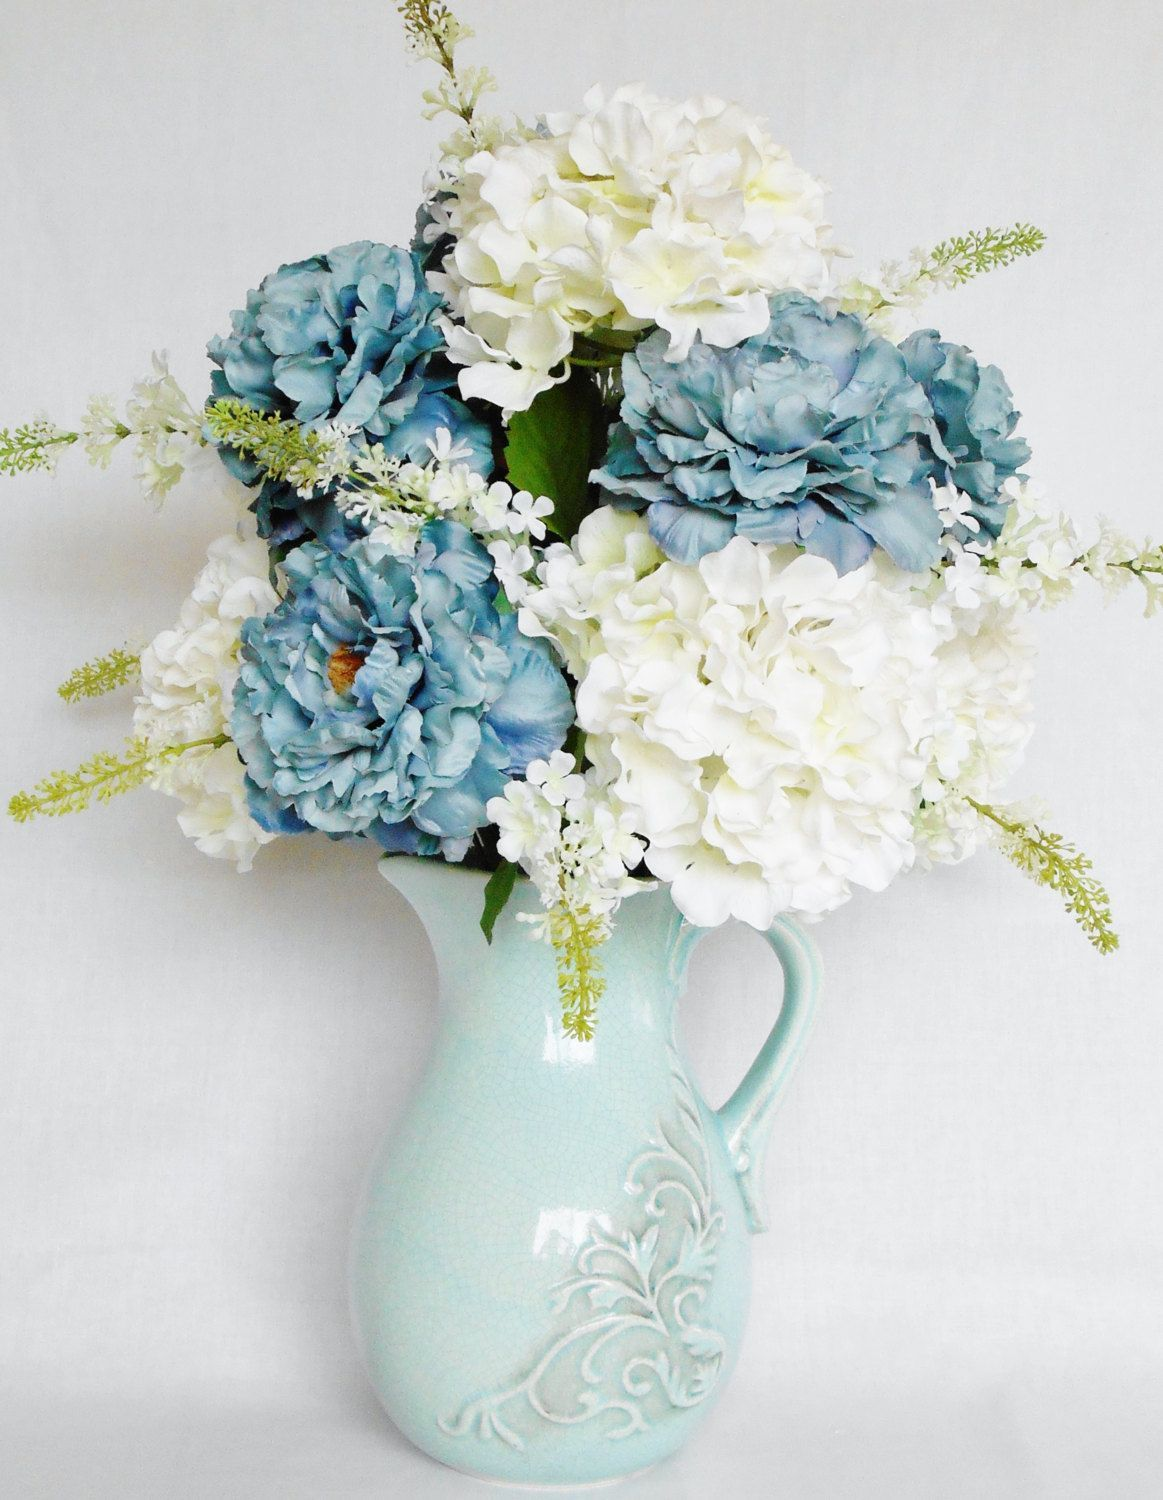 Artificial Flower Arrangement Teal Peonies White Hydrangea Aqua Pitcher Vase Silk Flower